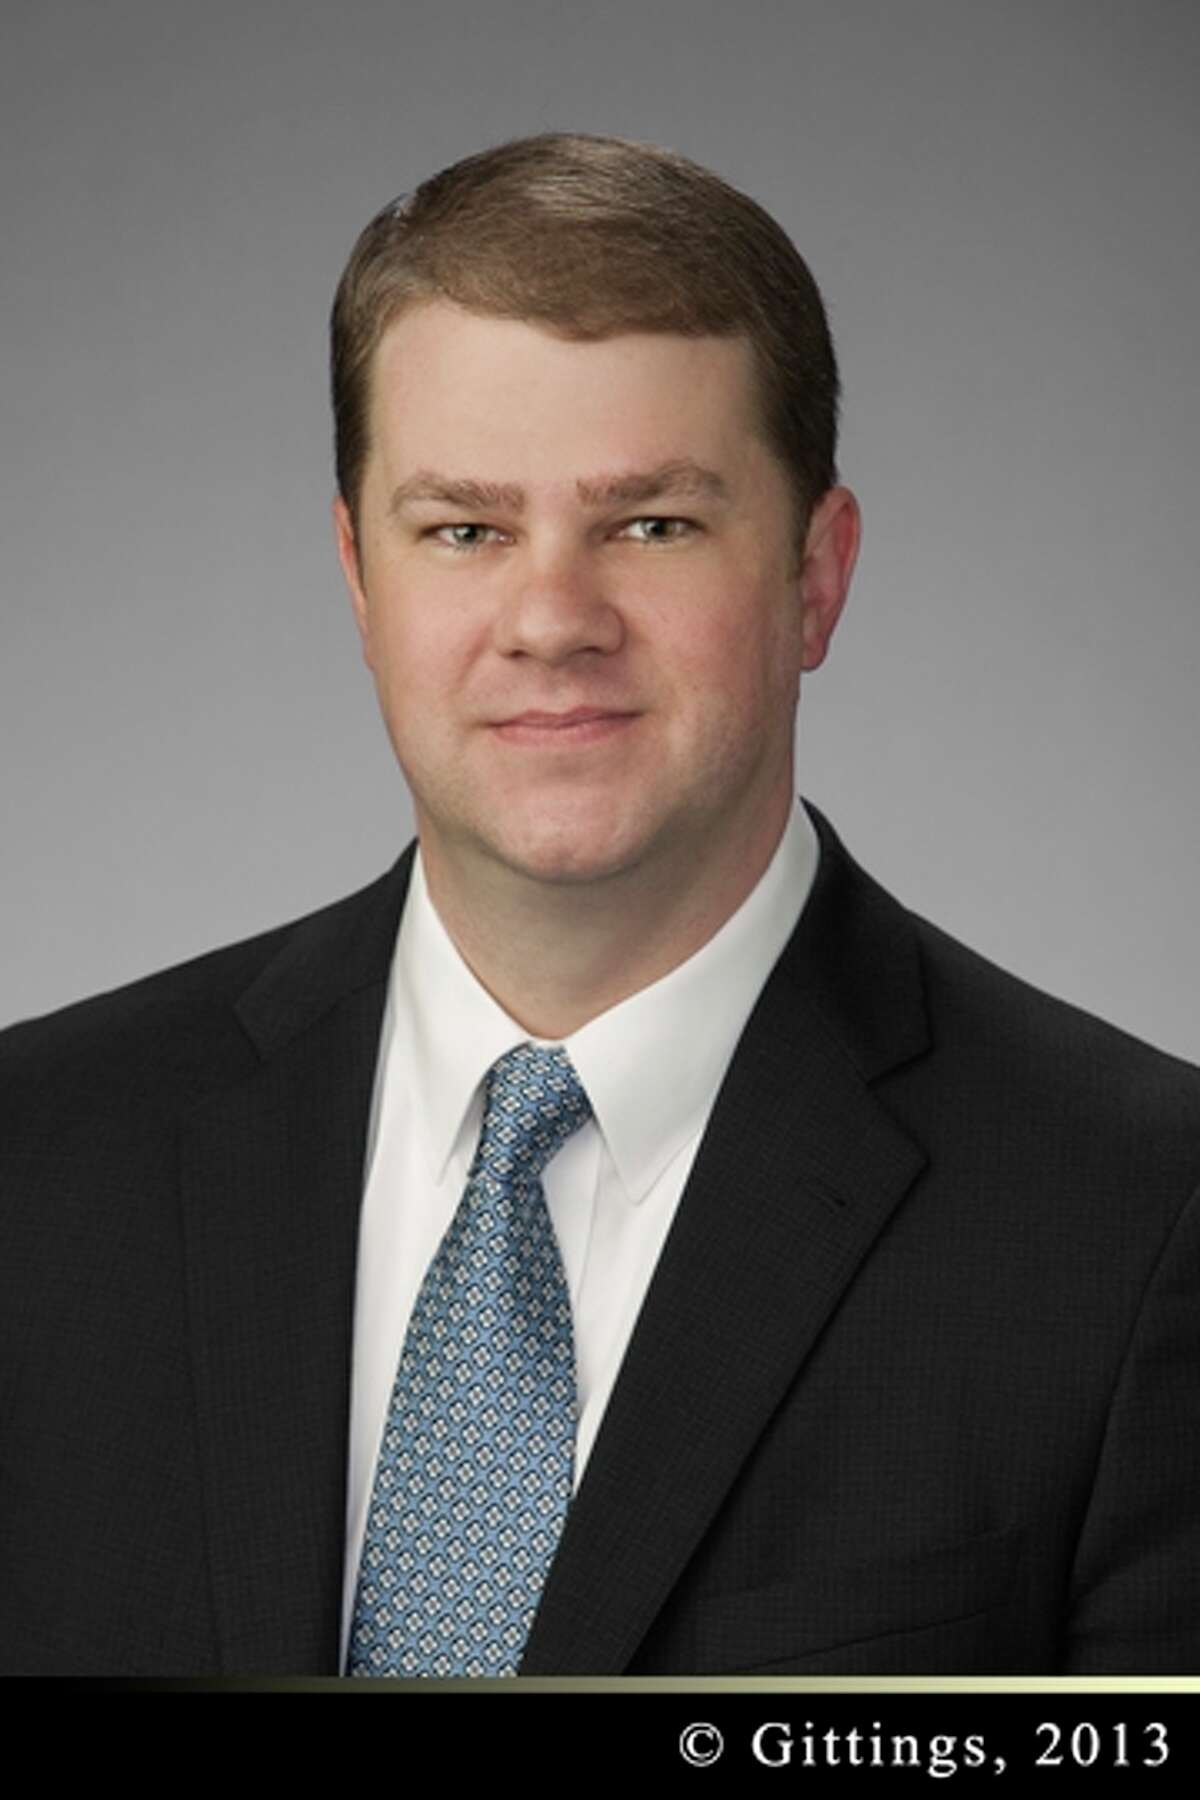 Citi Commercial Bank has named Jonathan Meyer to the position of Vice President and Relationship Manager. He is focused on building strategic relationships in the Houston area with middle market companies. His specializations include commercial lending, treasury management and international transactions.